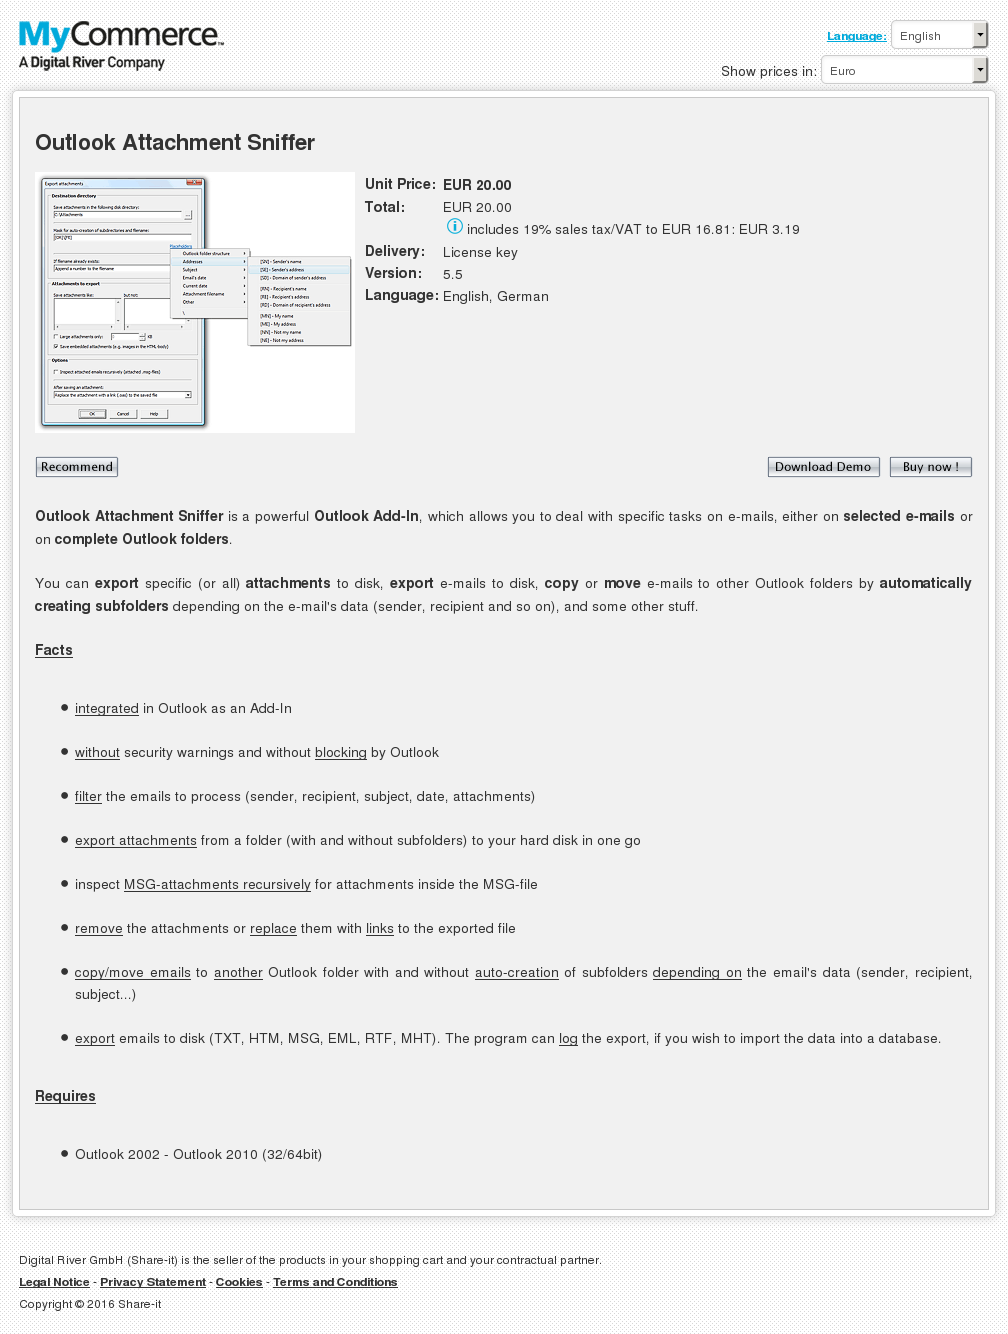 Outlook Attachment Sniffer Key Information